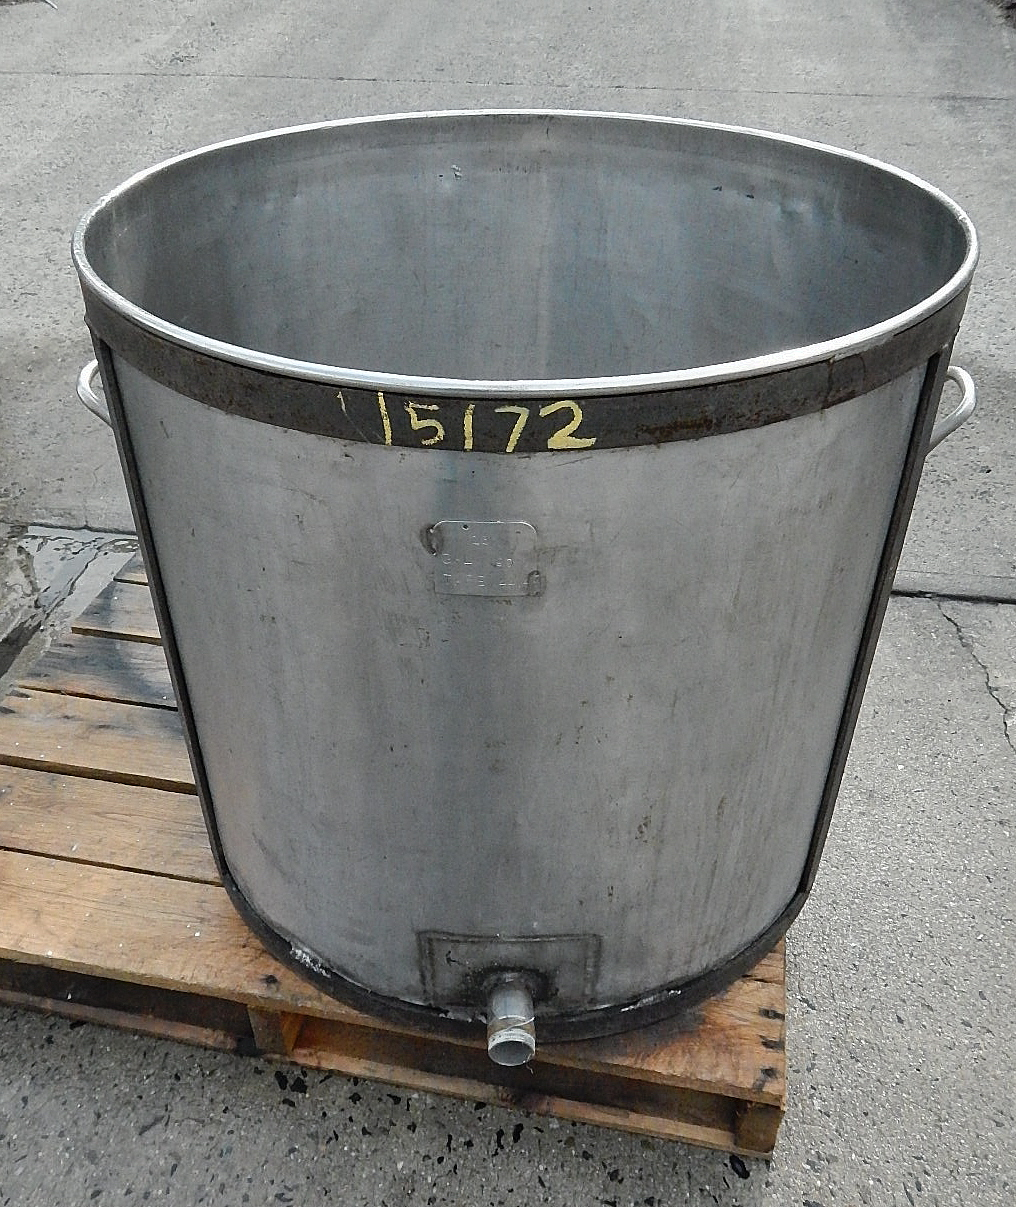 Batch tank 90 gallon stainless steel tanks champion for Reinforcements stainless steel jewelry